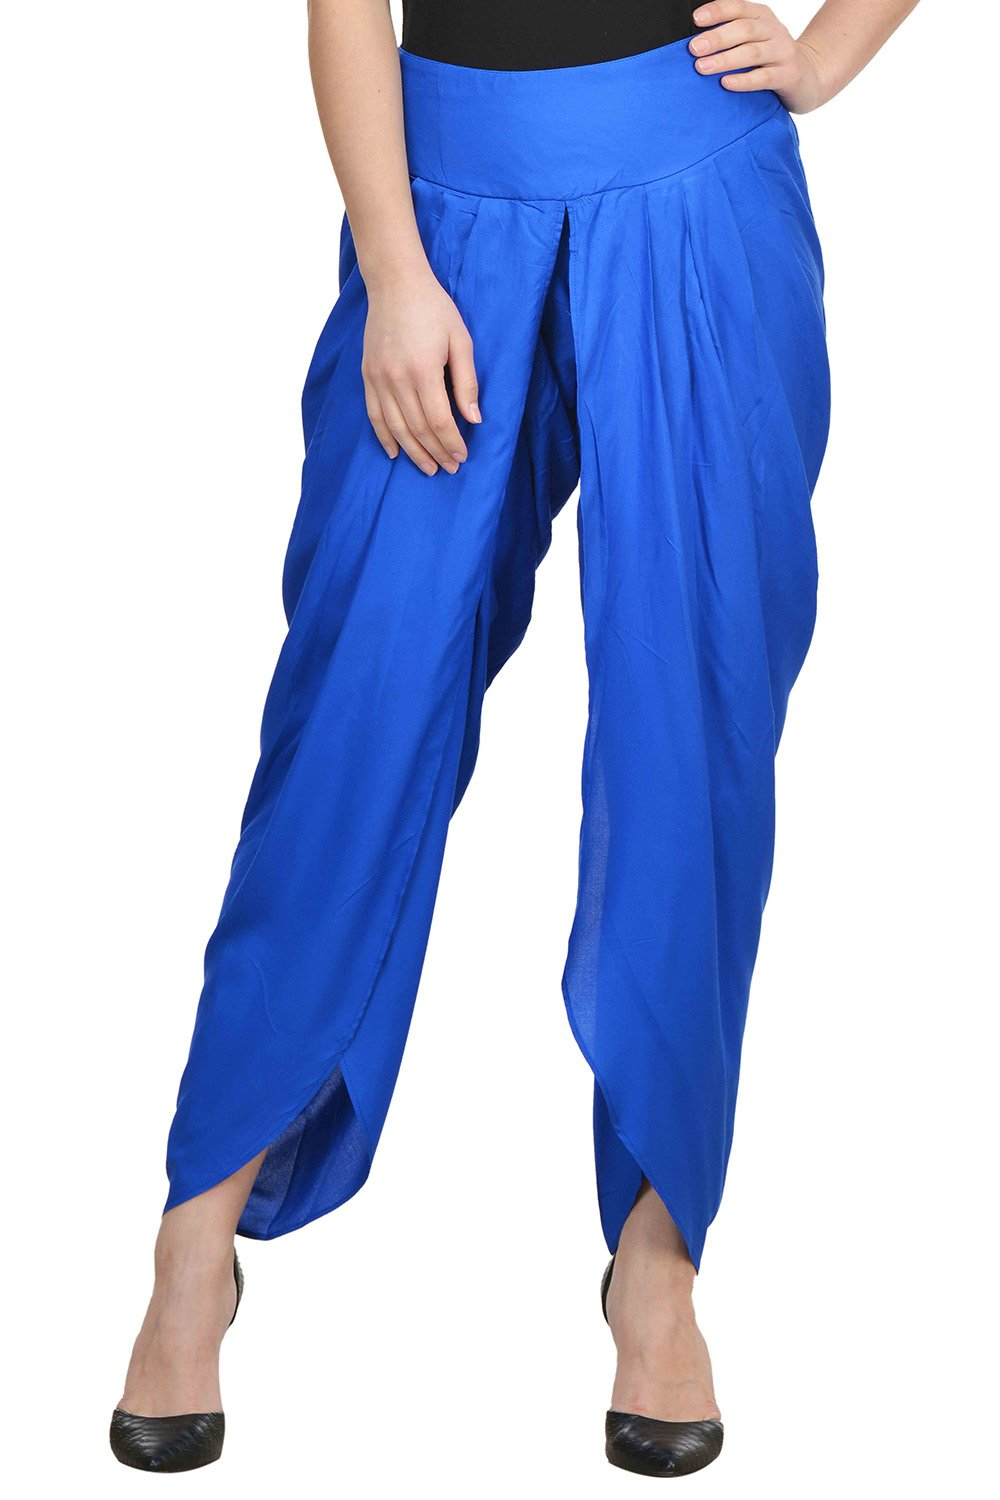 Castle-Royal-Blue-Solid-Rayon-Dhoti-Salwar